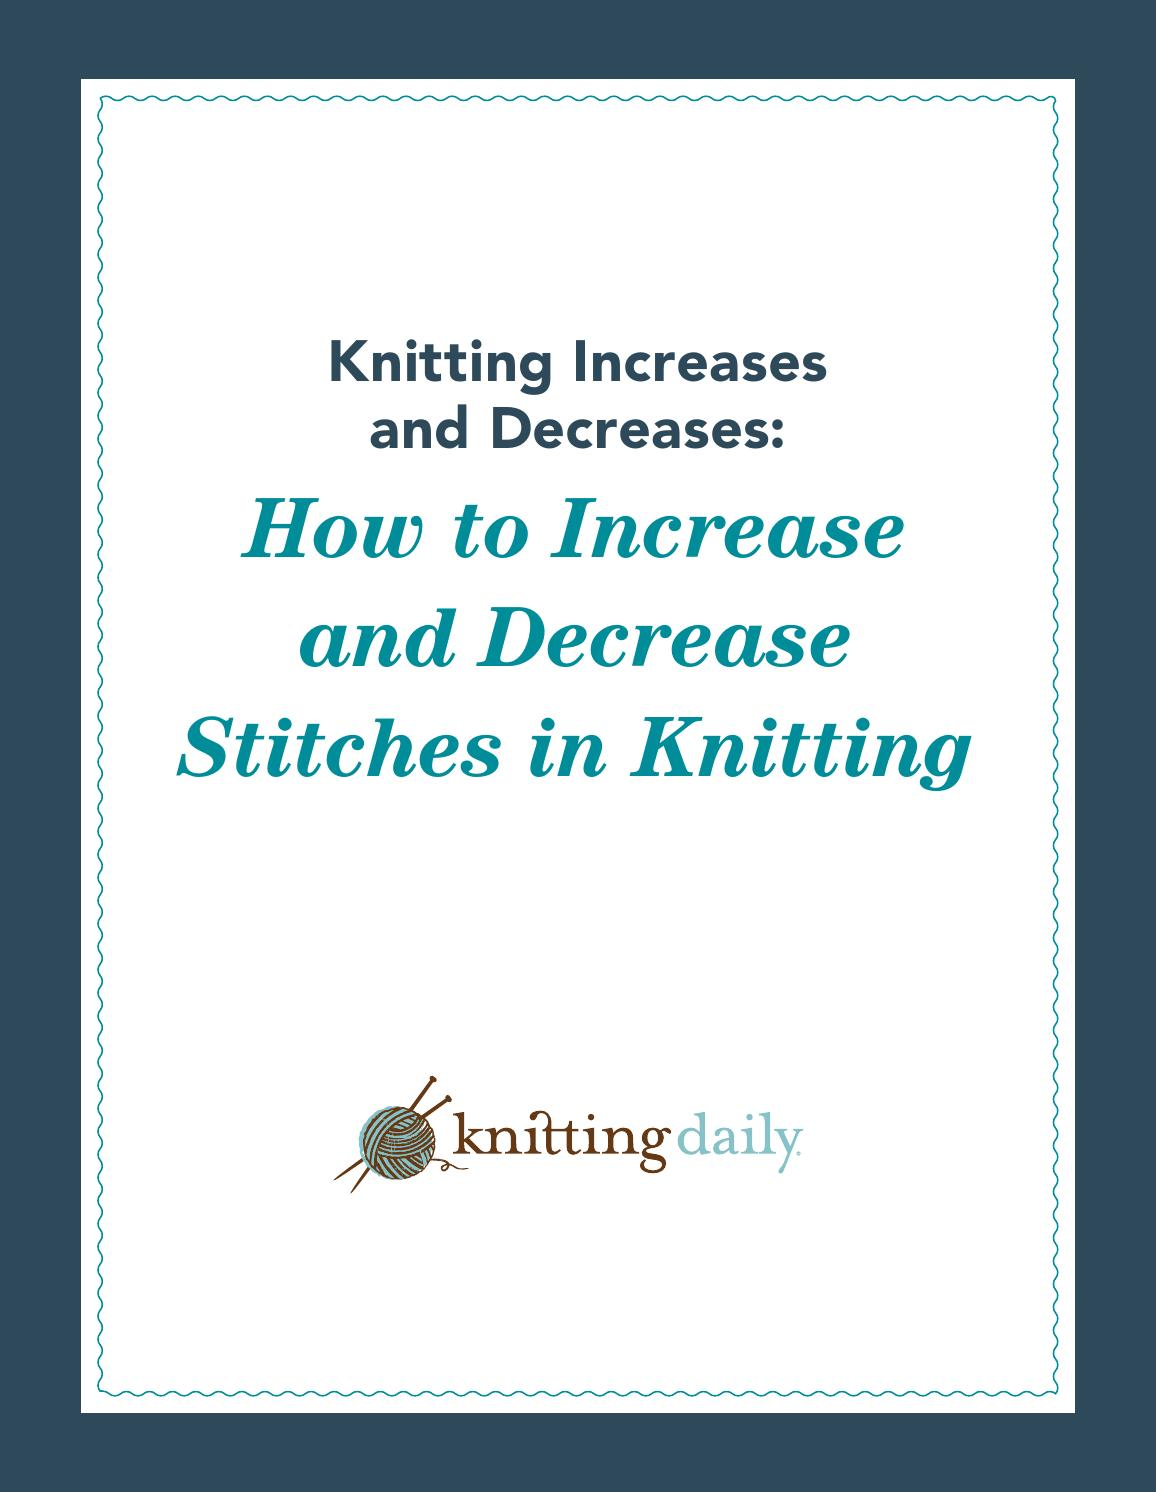 How To Increase Stitches While Knitting : Knitting increases and decreases by jasmina sizz - issuu